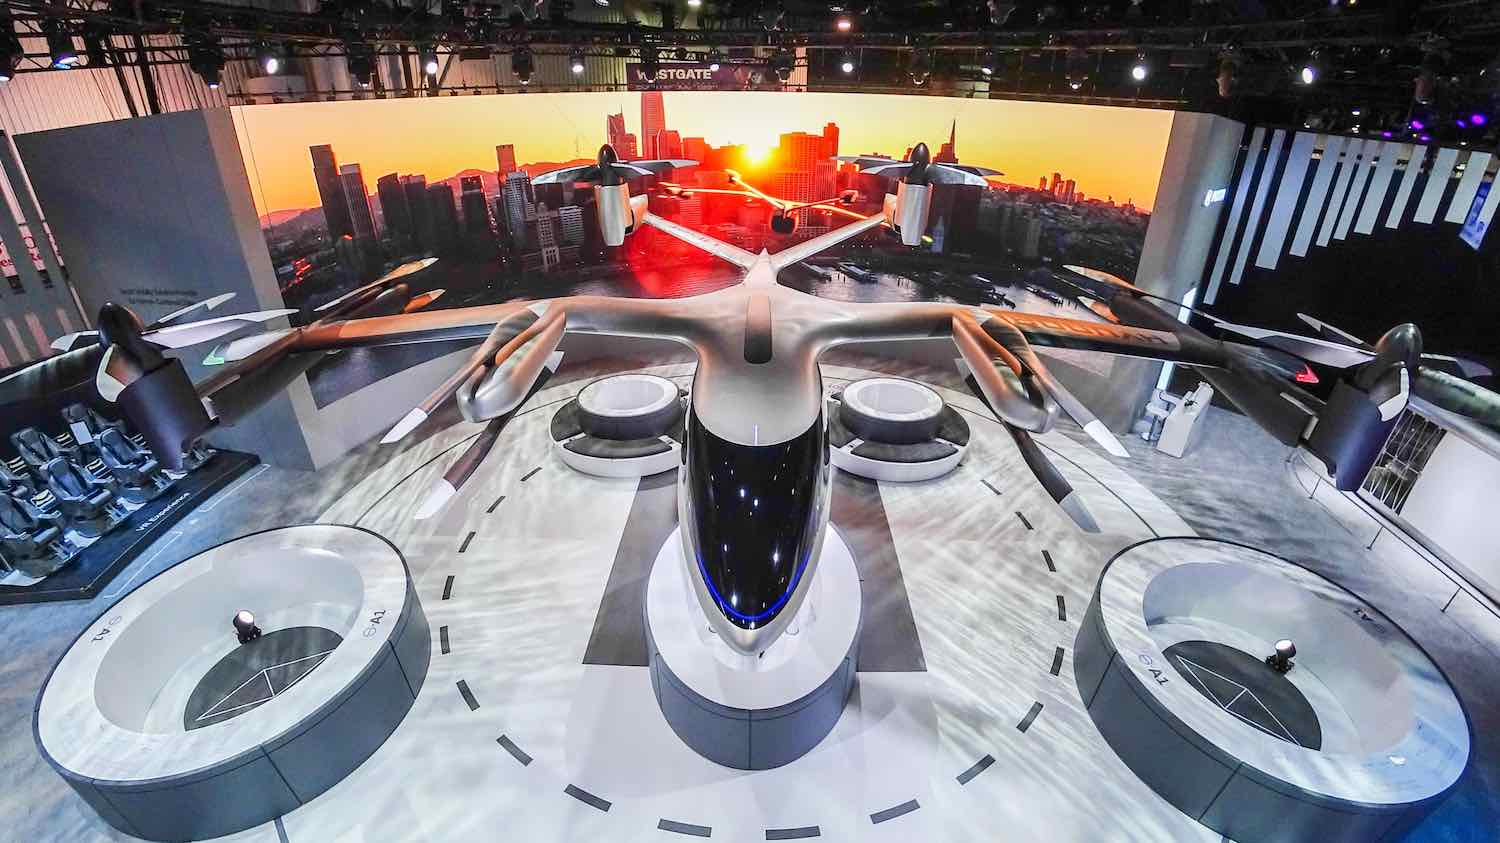 S-A1 aerial vehicle by Hyundai and Uber - Courtesy of Hyundai.